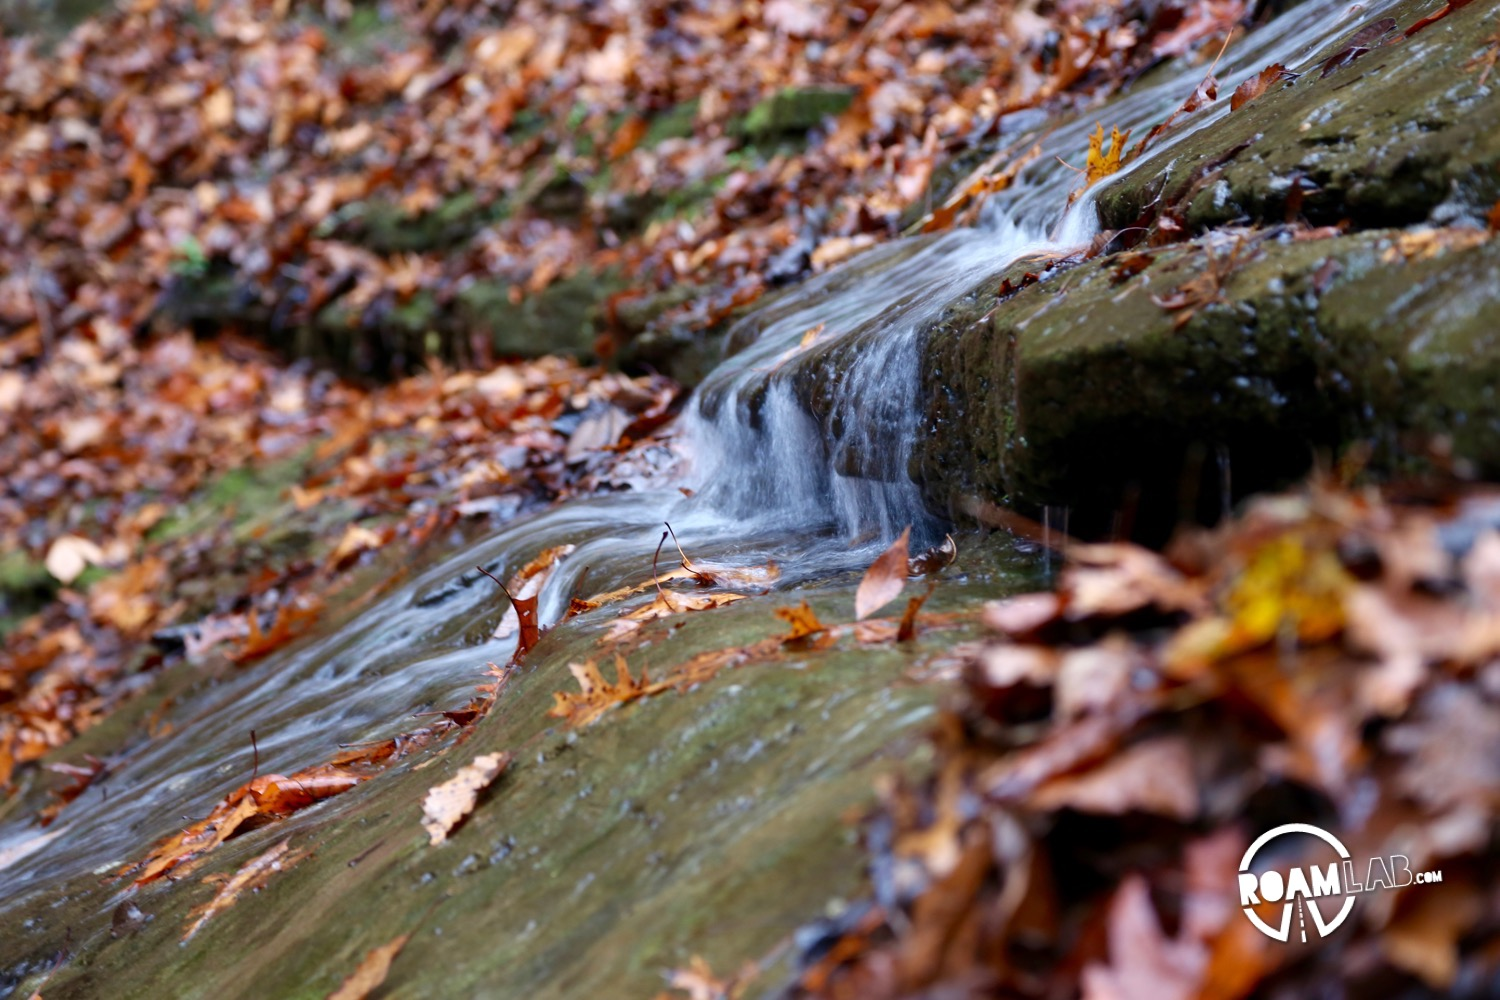 Jackson Falls is one of the iconic waterfalls along the Natchez Trace Parkway.